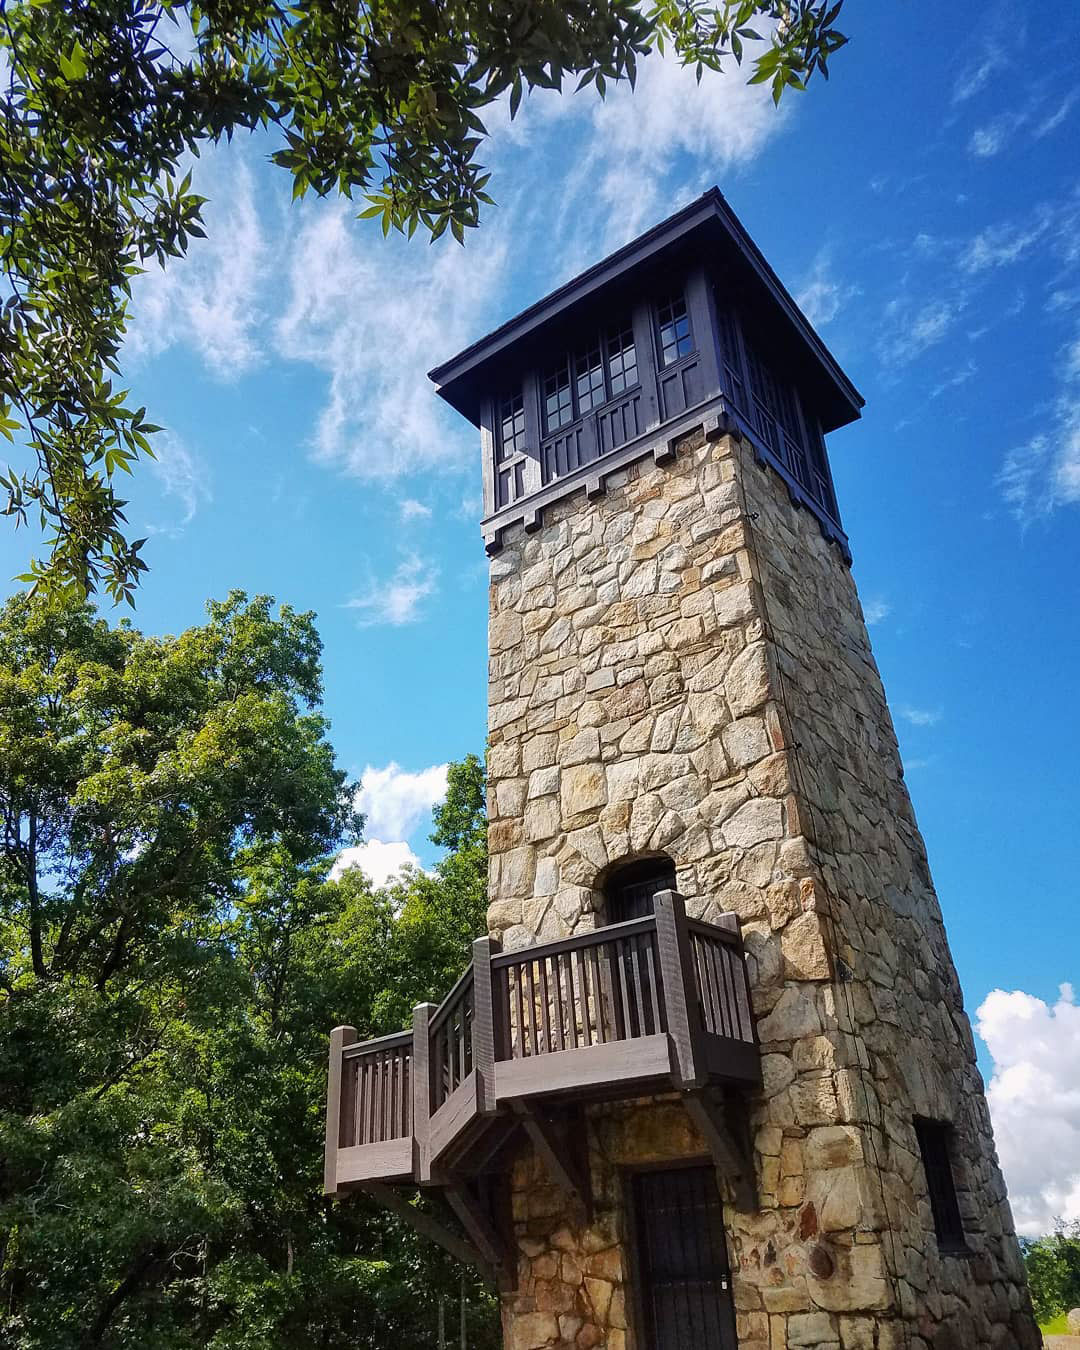 Fire tower at Fort Mountain State Park in Chatsworth, Georgia. Photo by @tfdecot